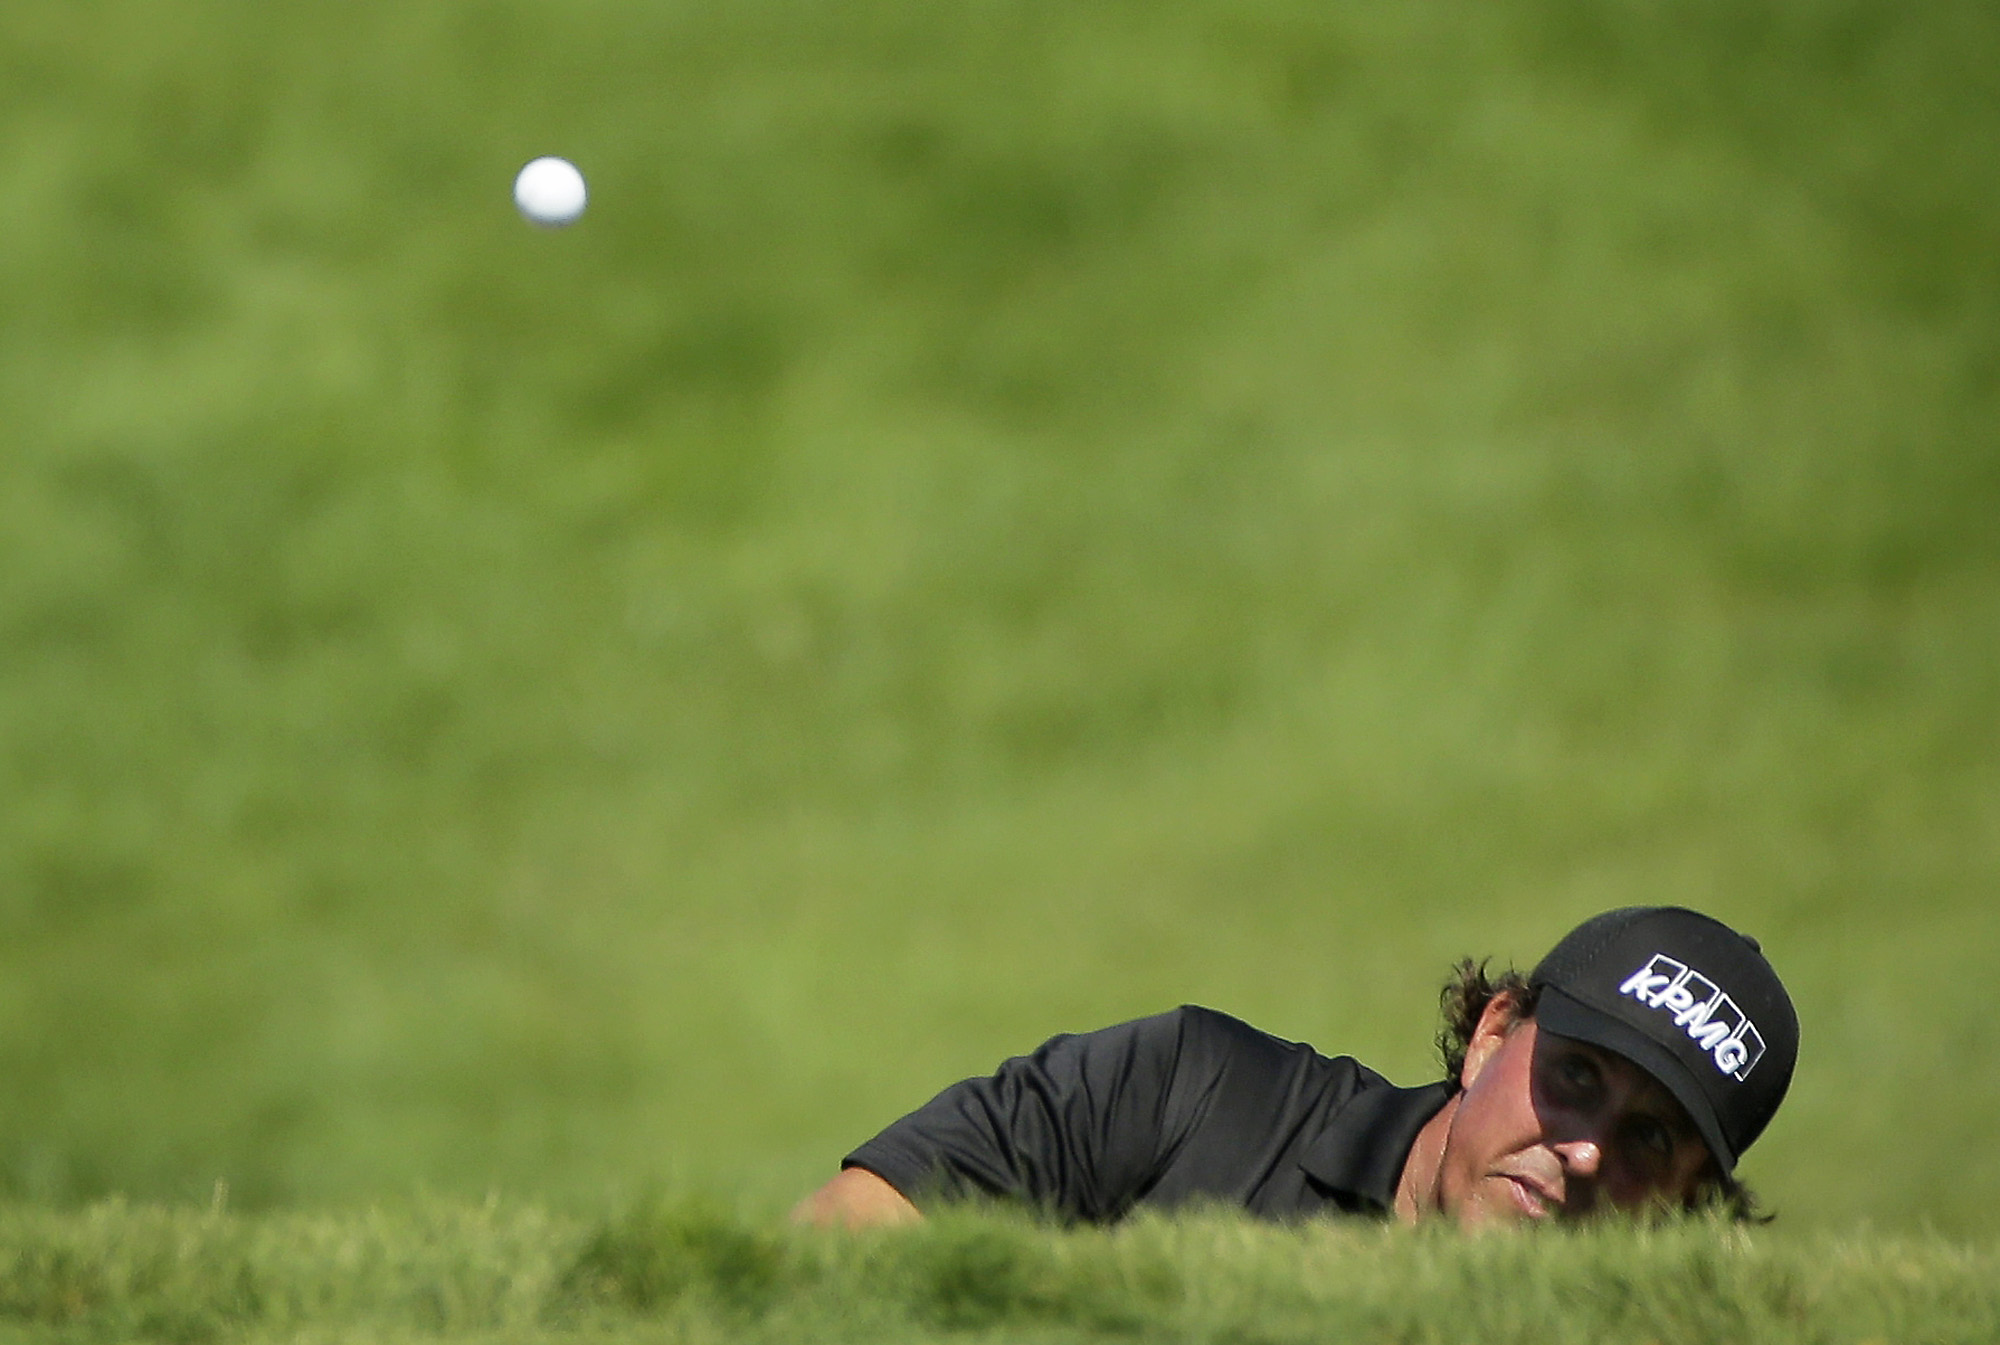 Phil Mickelson hits on the 18th hole during the third round of the PGA Championship. (AP)